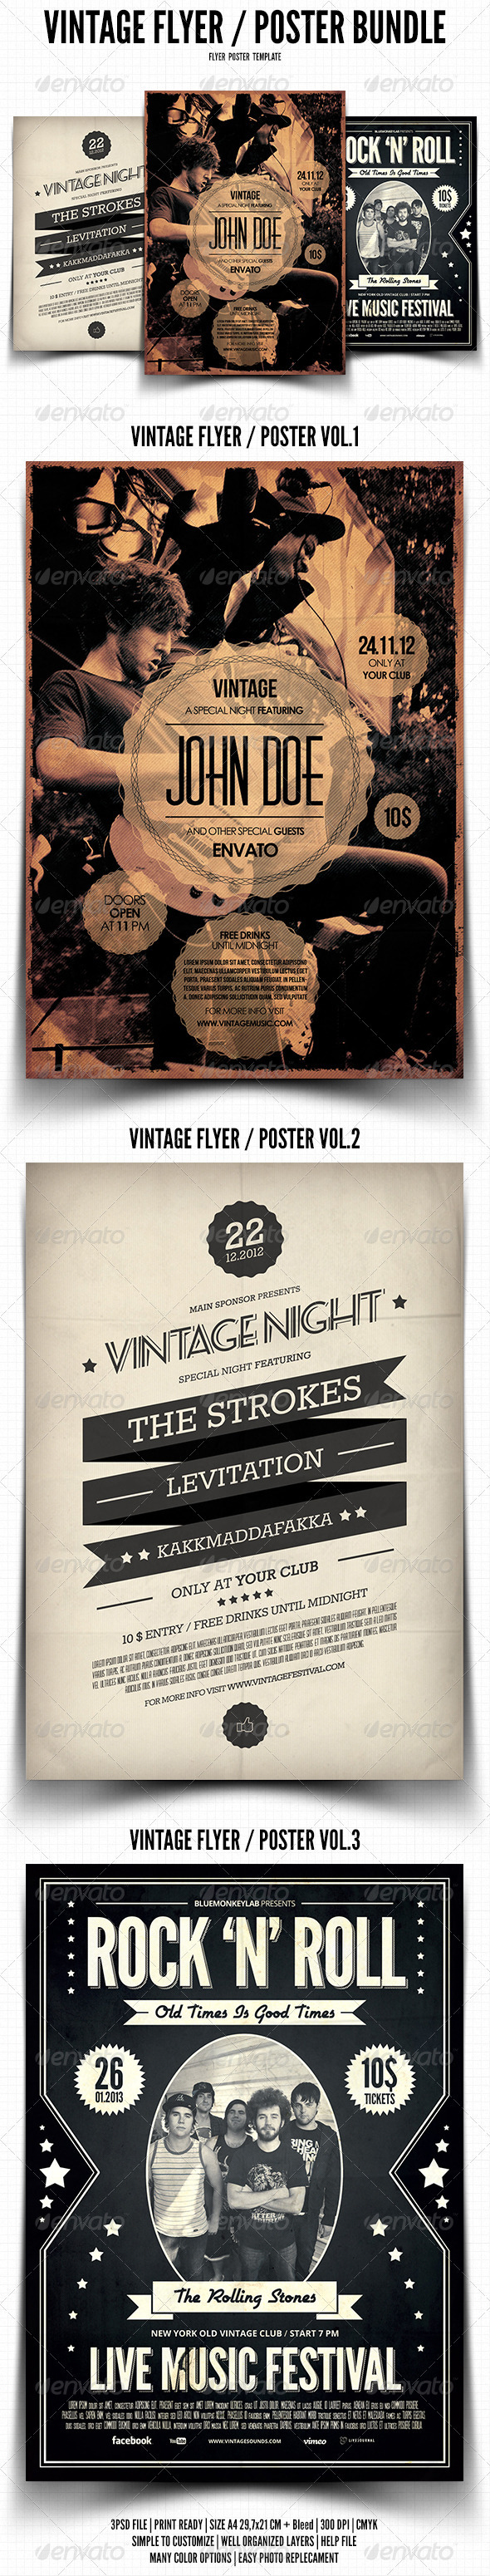 Vintage Flyer Poster Bundle